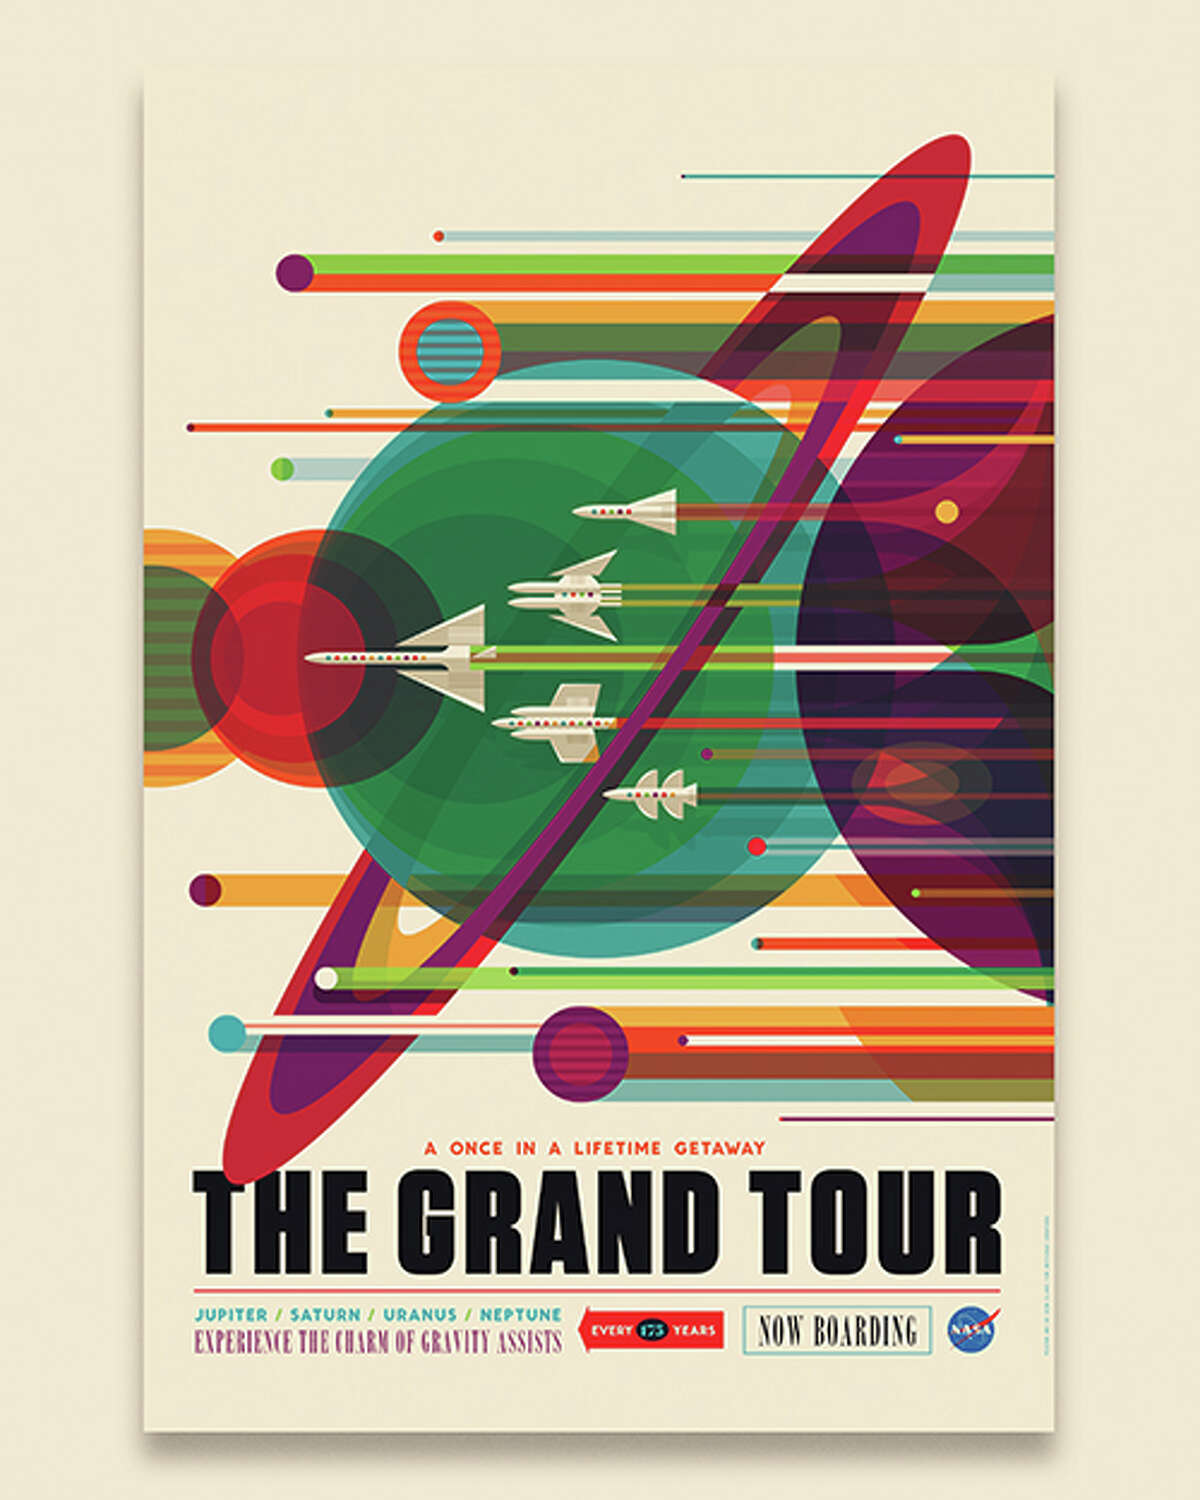 """""""The Grand Tour: NASA's Voyager mission took advantage of a once-every-175-year alignment of the outer planets for a grand tour of the solar system. The twin spacecraft revealed stunning details about Jupiter, Saturn, Uranus and Neptune - using each planet's gravity to send them on to the next destination. Voyager set the stage for such ambitious orbiter missions as Galileo to Jupiter and Cassini to Saturn. Today both Voyager spacecraft continue to return valuable science from the far reaches of our solar system."""" - Invisible Creature"""